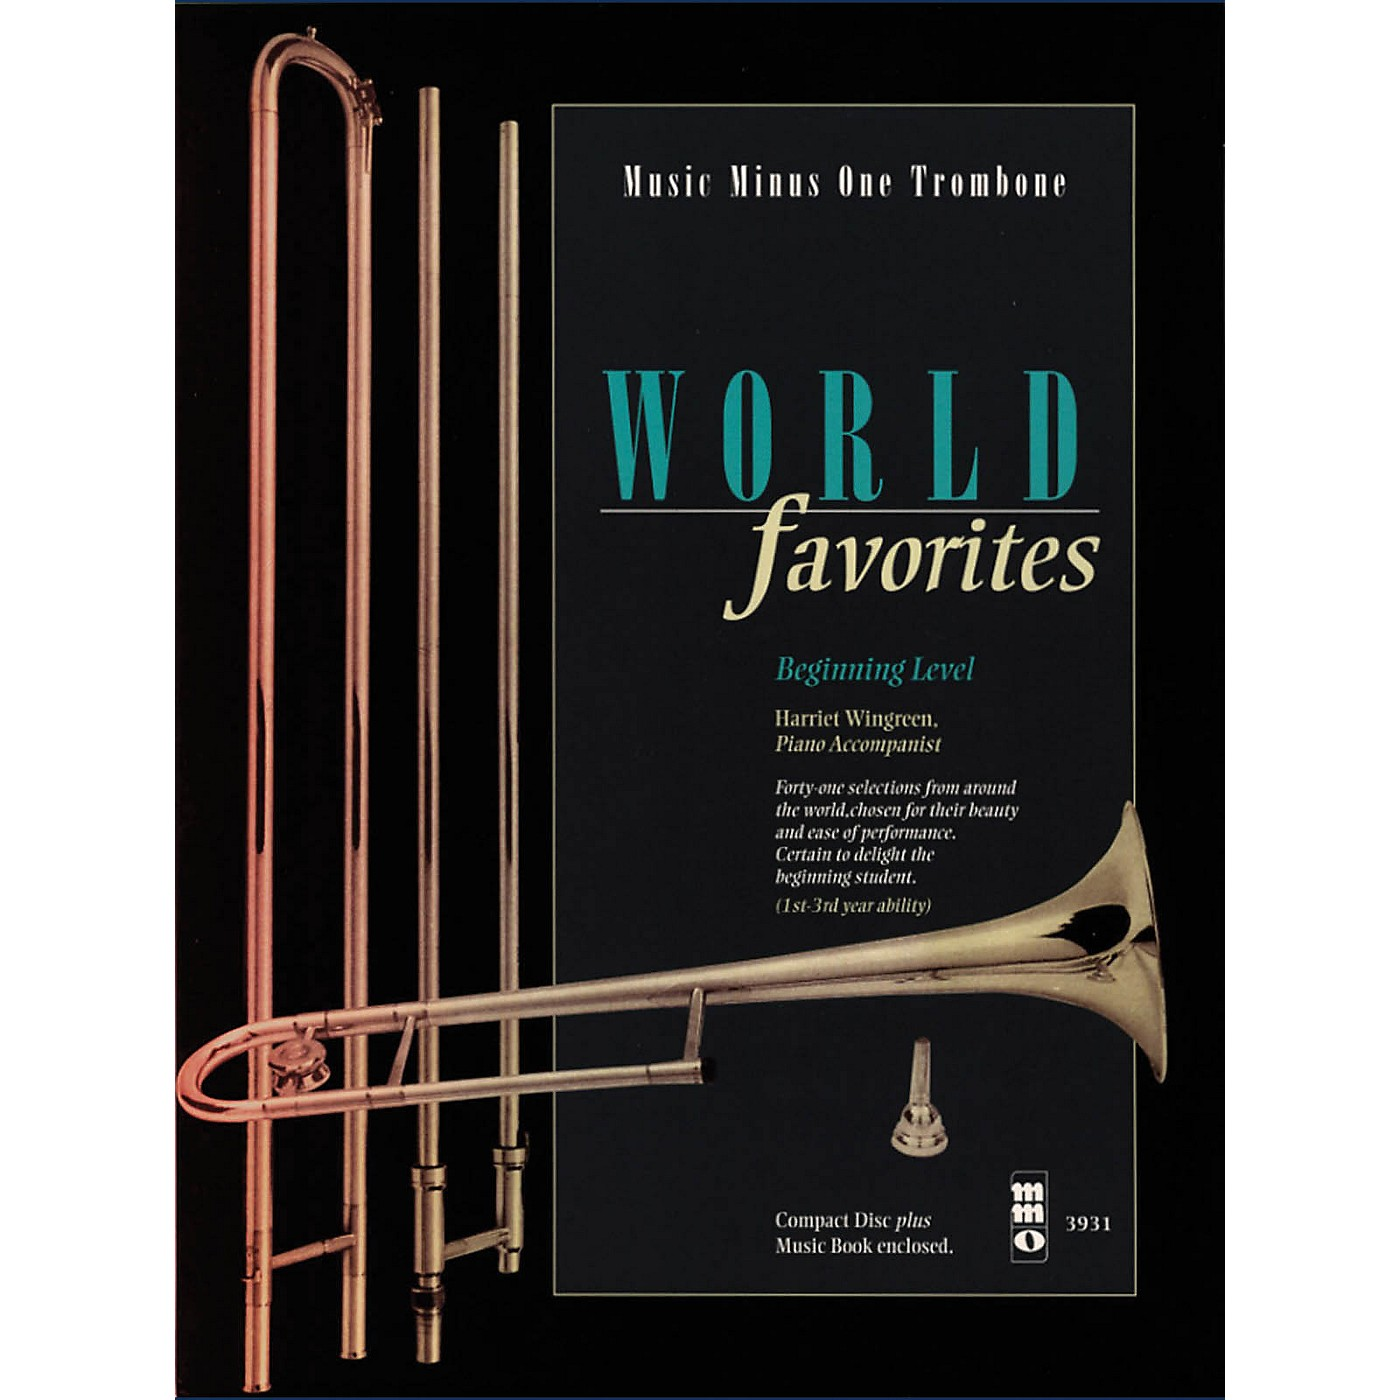 Music Minus One World Favorites - Beginning Level (Music Minus One Trombone) Music Minus One Series Softcover with CD thumbnail